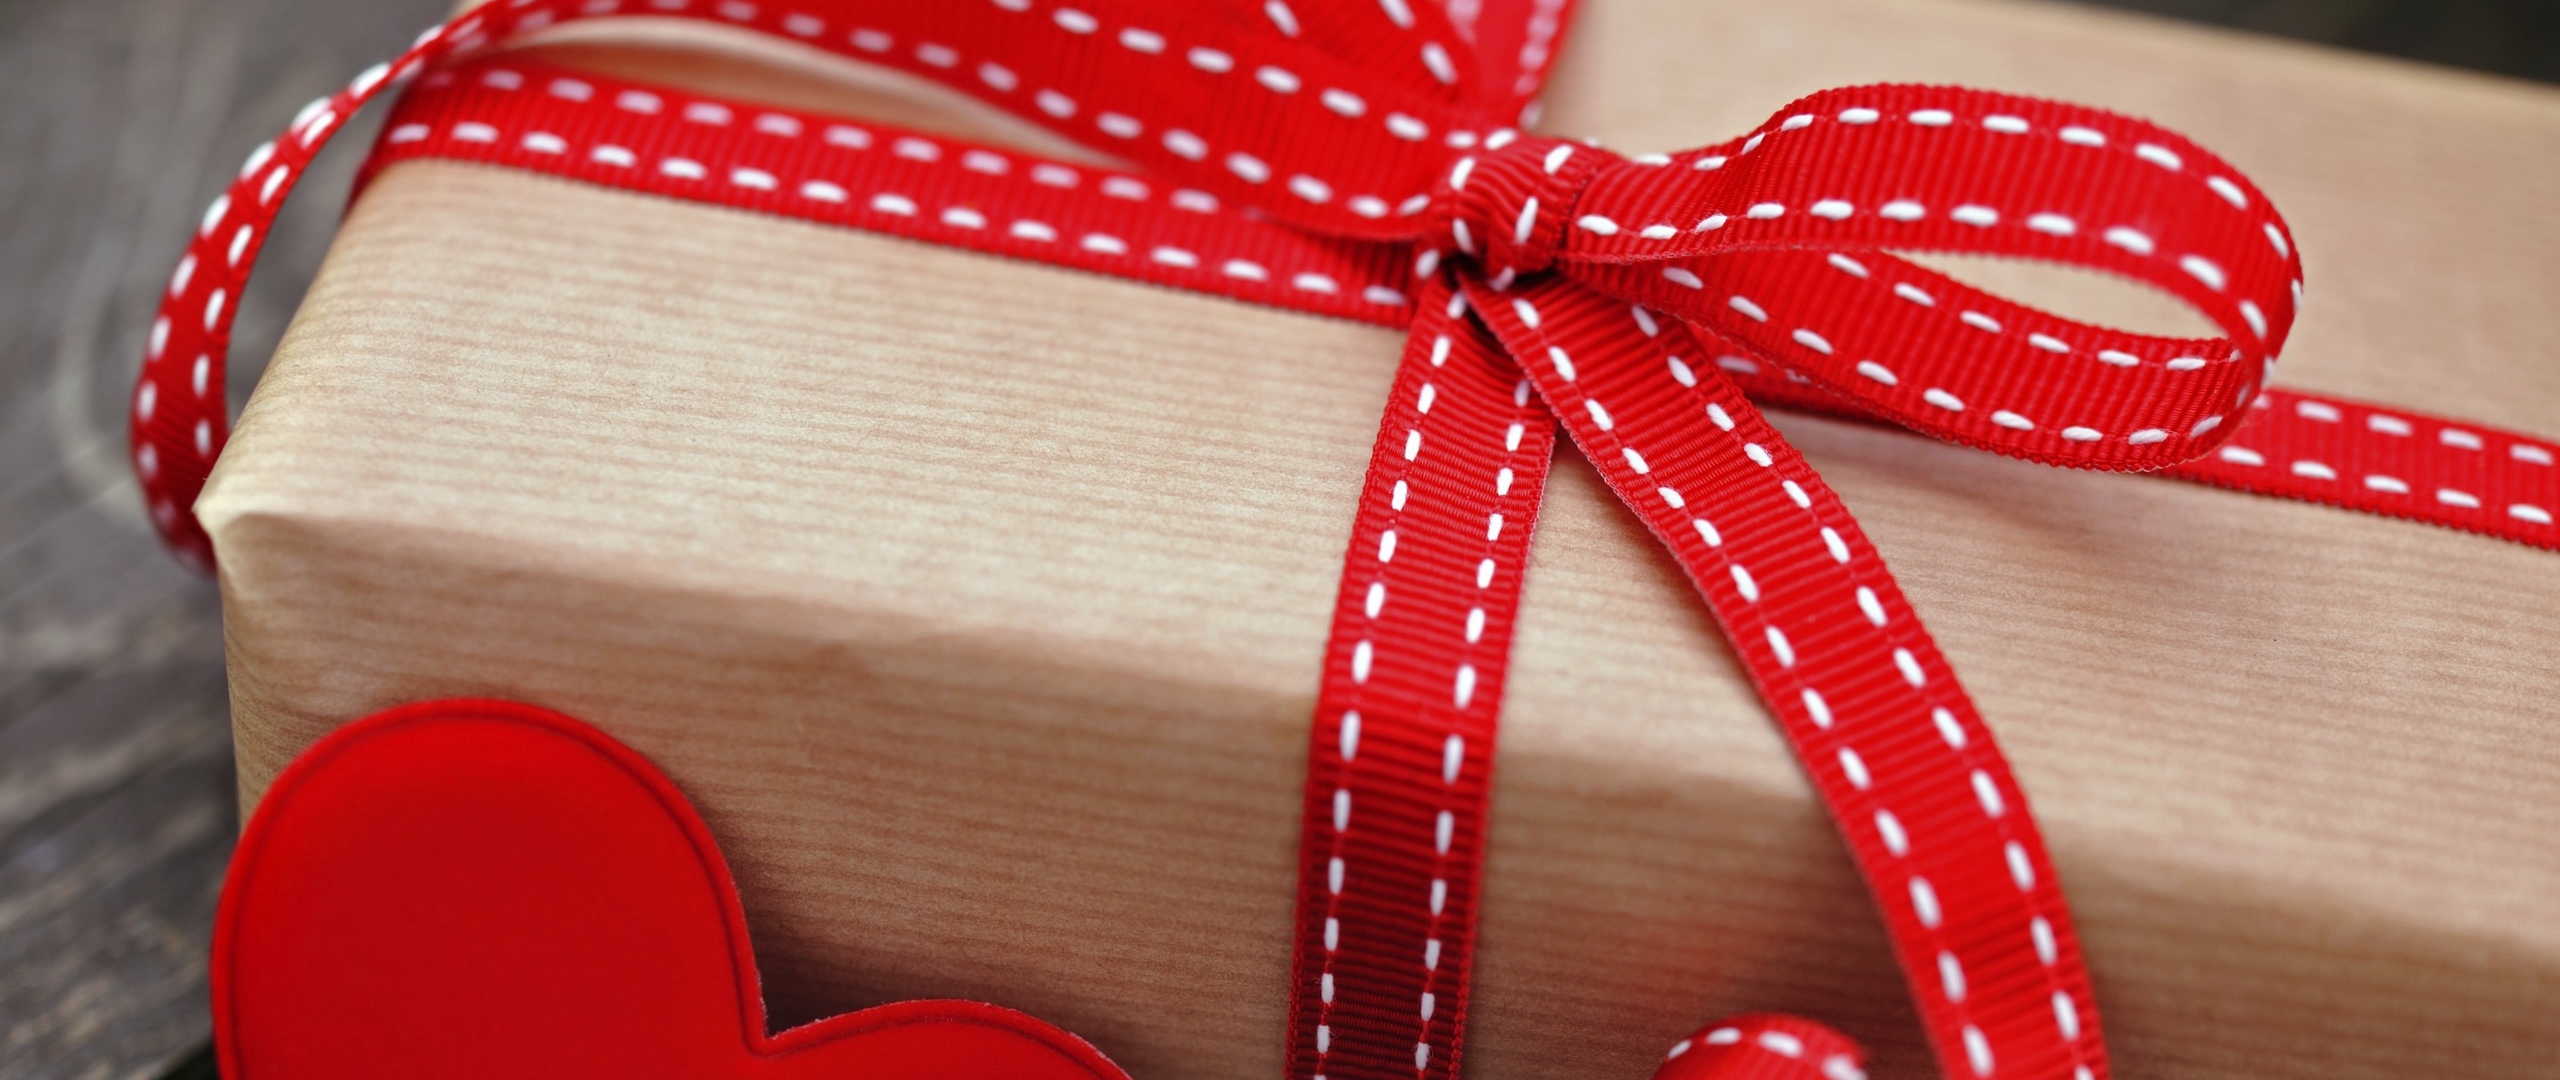 box gift holiday heart red tape x